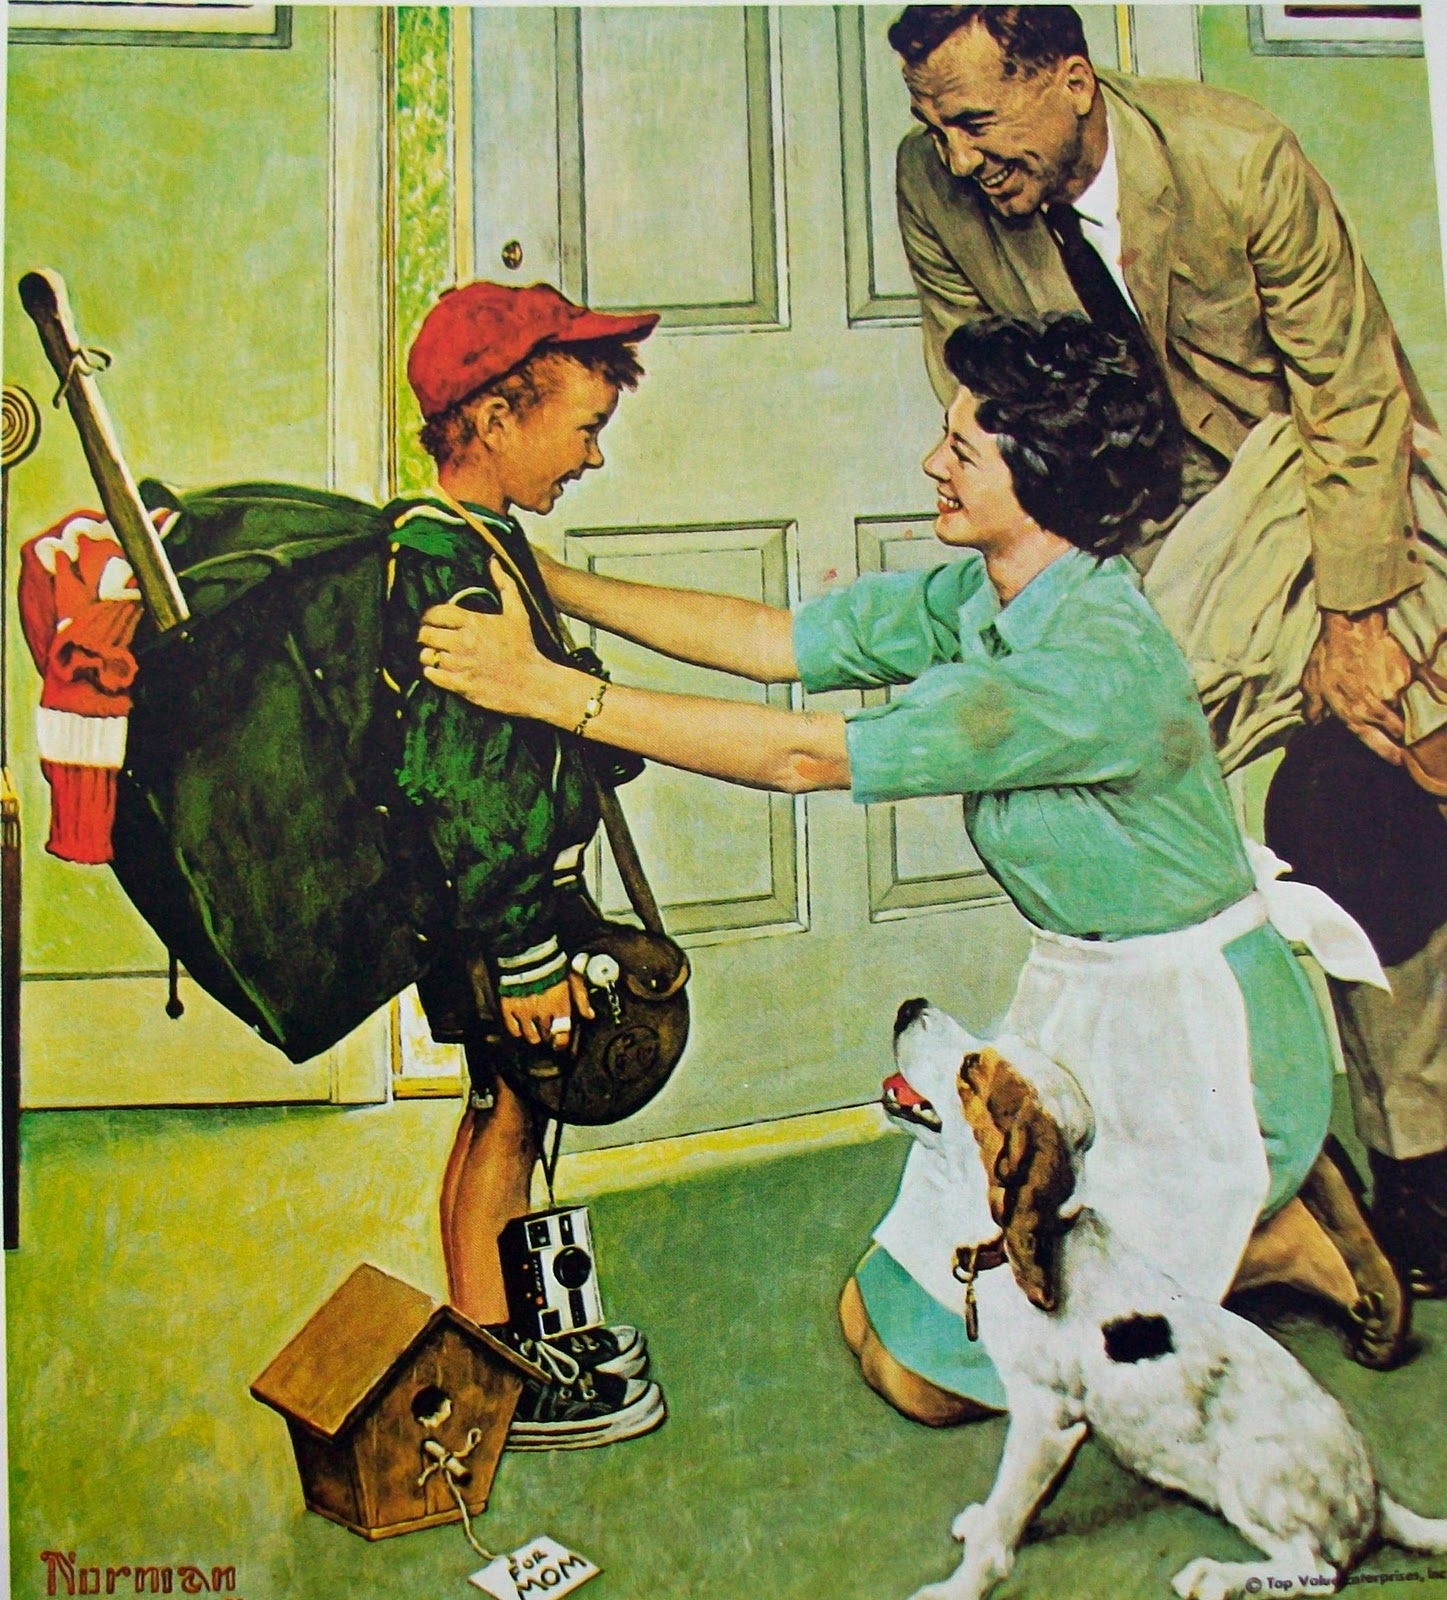 Top Value Auto >> 10minutes2breathe: More Norman Rockwell